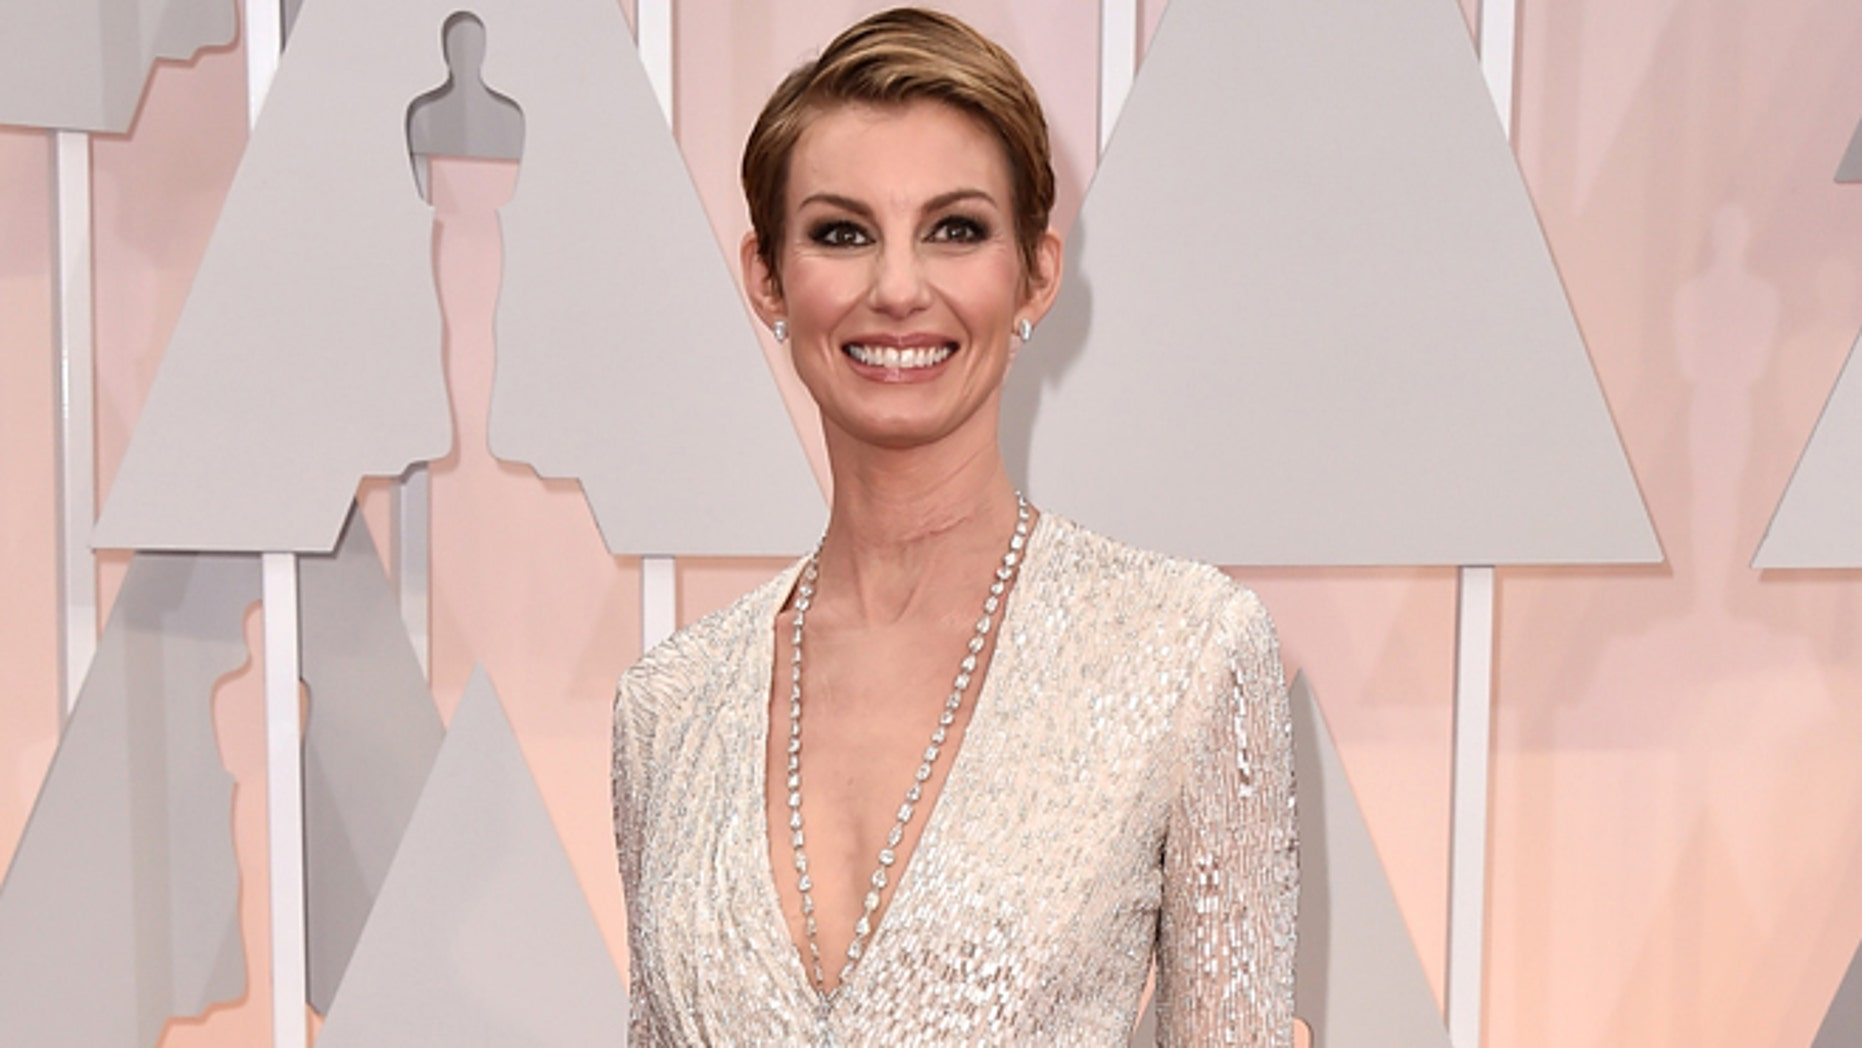 Faith Hill arrives at the Oscars on Sunday, Feb. 22, 2015, at the Dolby Theatre in Los Angeles. (Photo by Jordan Strauss/Invision/AP)